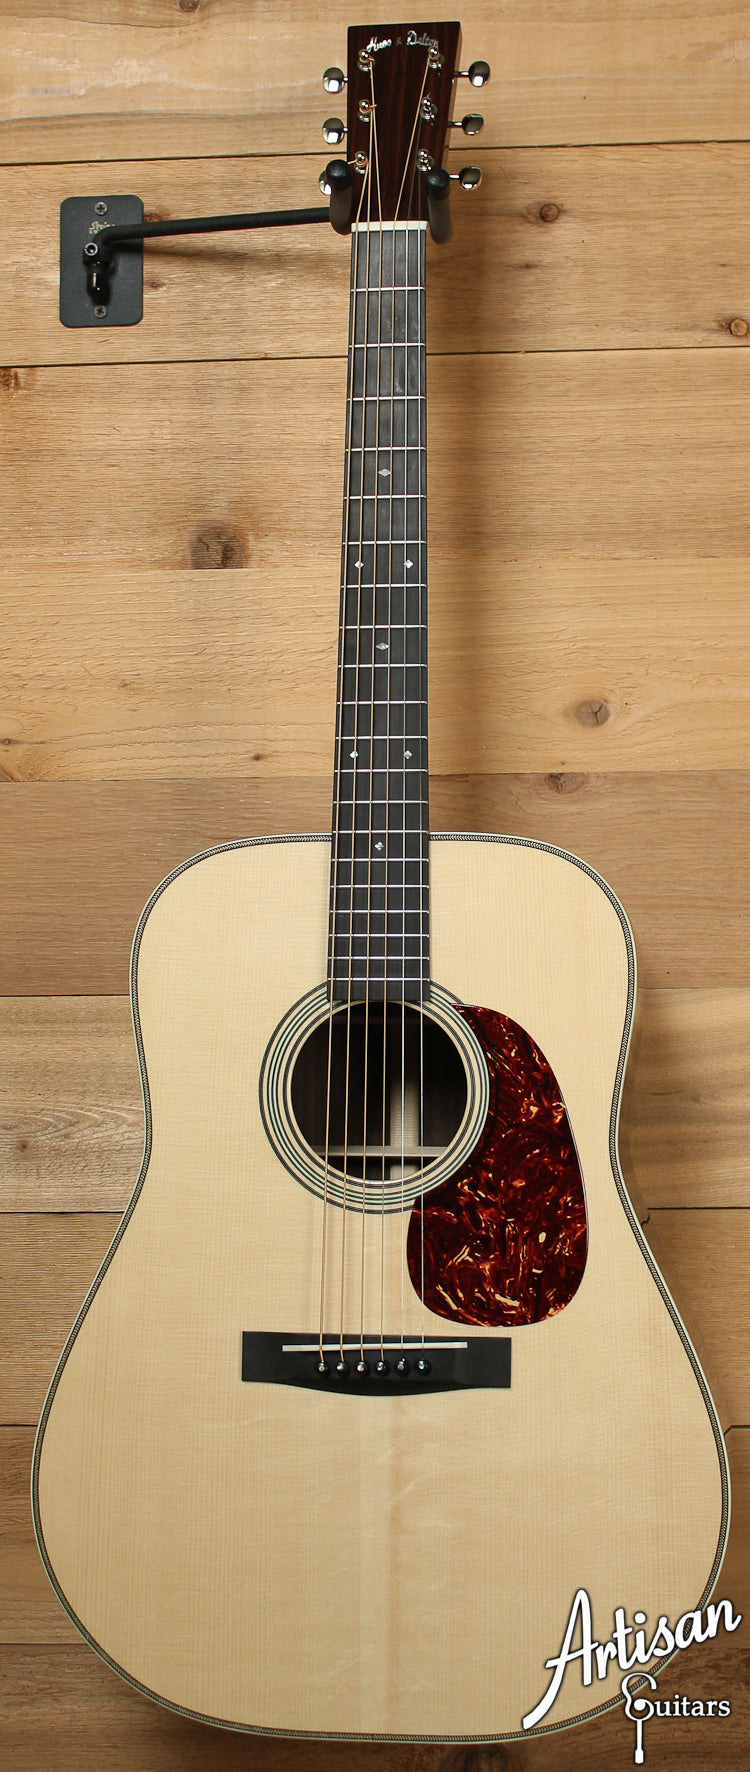 2012 Pre-Owned Huss and Dalton TD R Custom Red Spruce and Indian Rosewood ID-7803 - Artisan Guitars